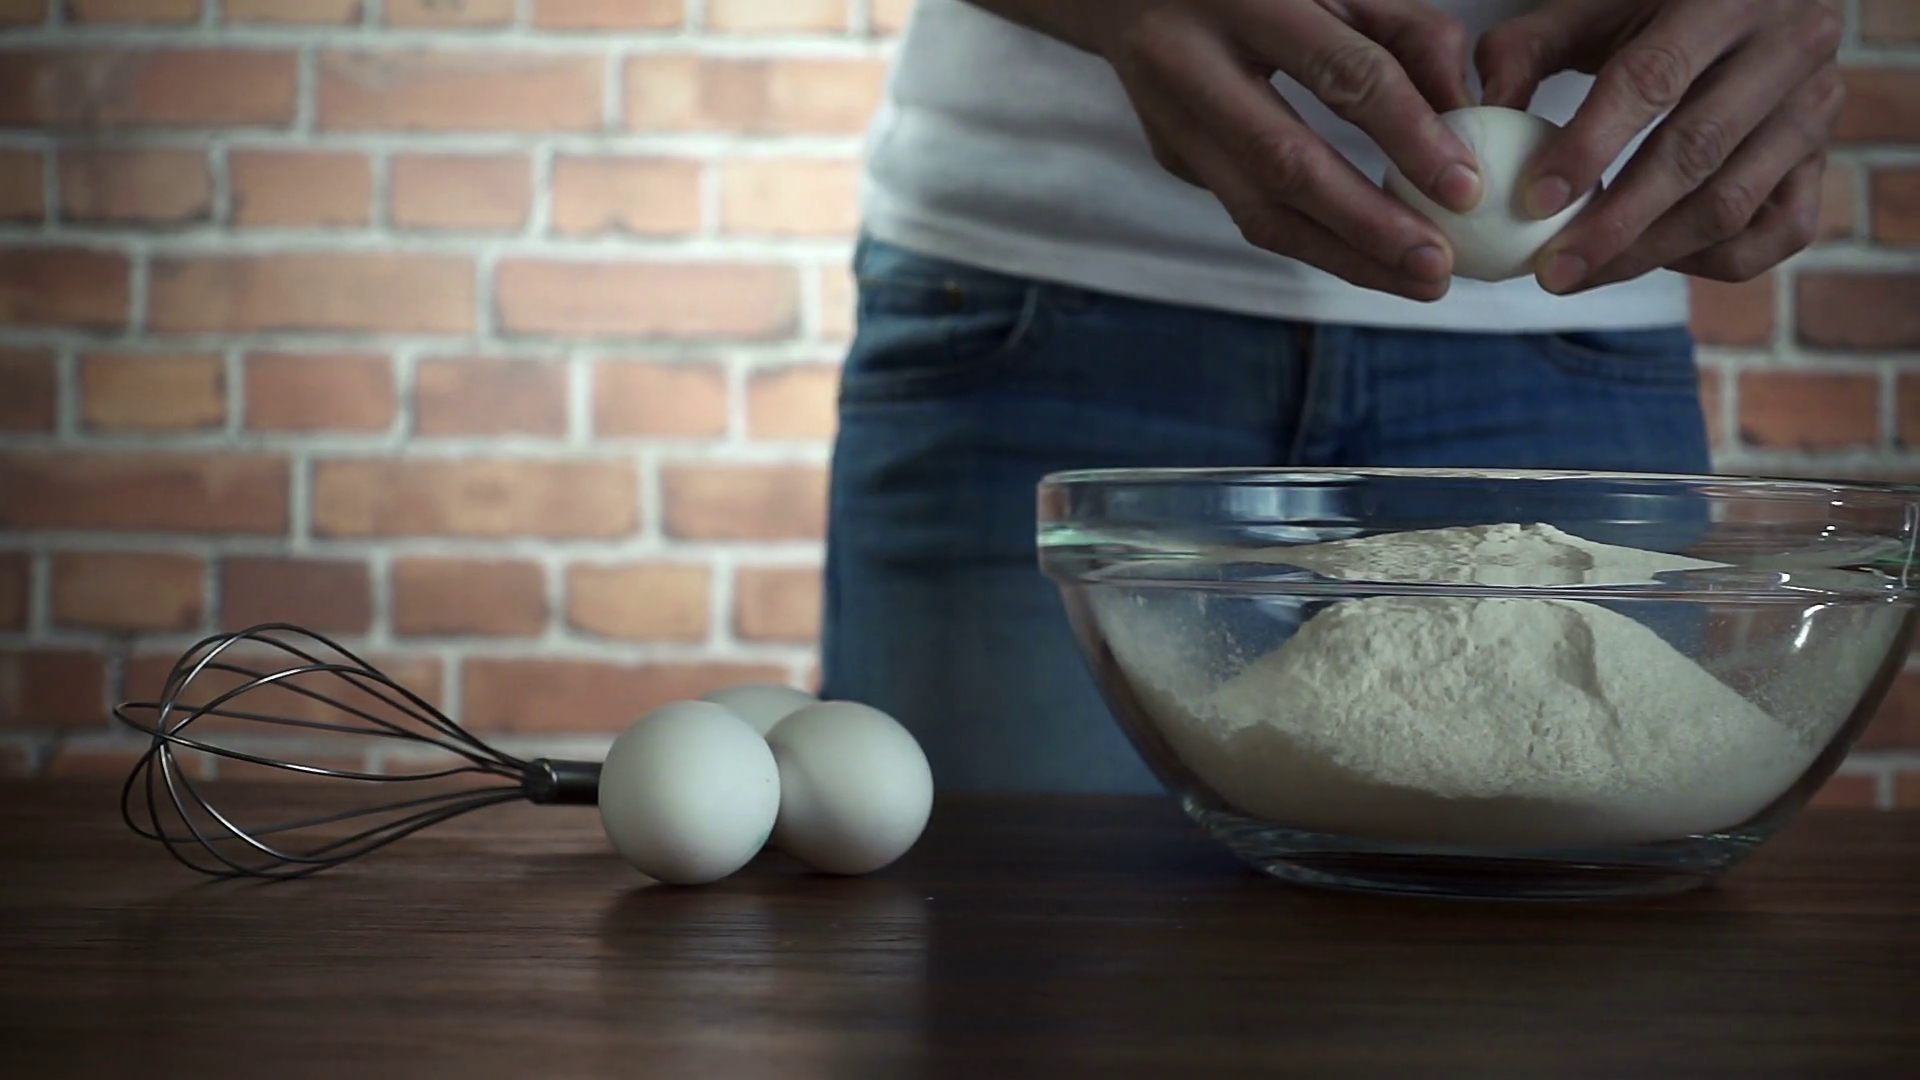 Woman crack egg in glass bowl with flour, slow motion hd video - Cracked Egg PNG HD